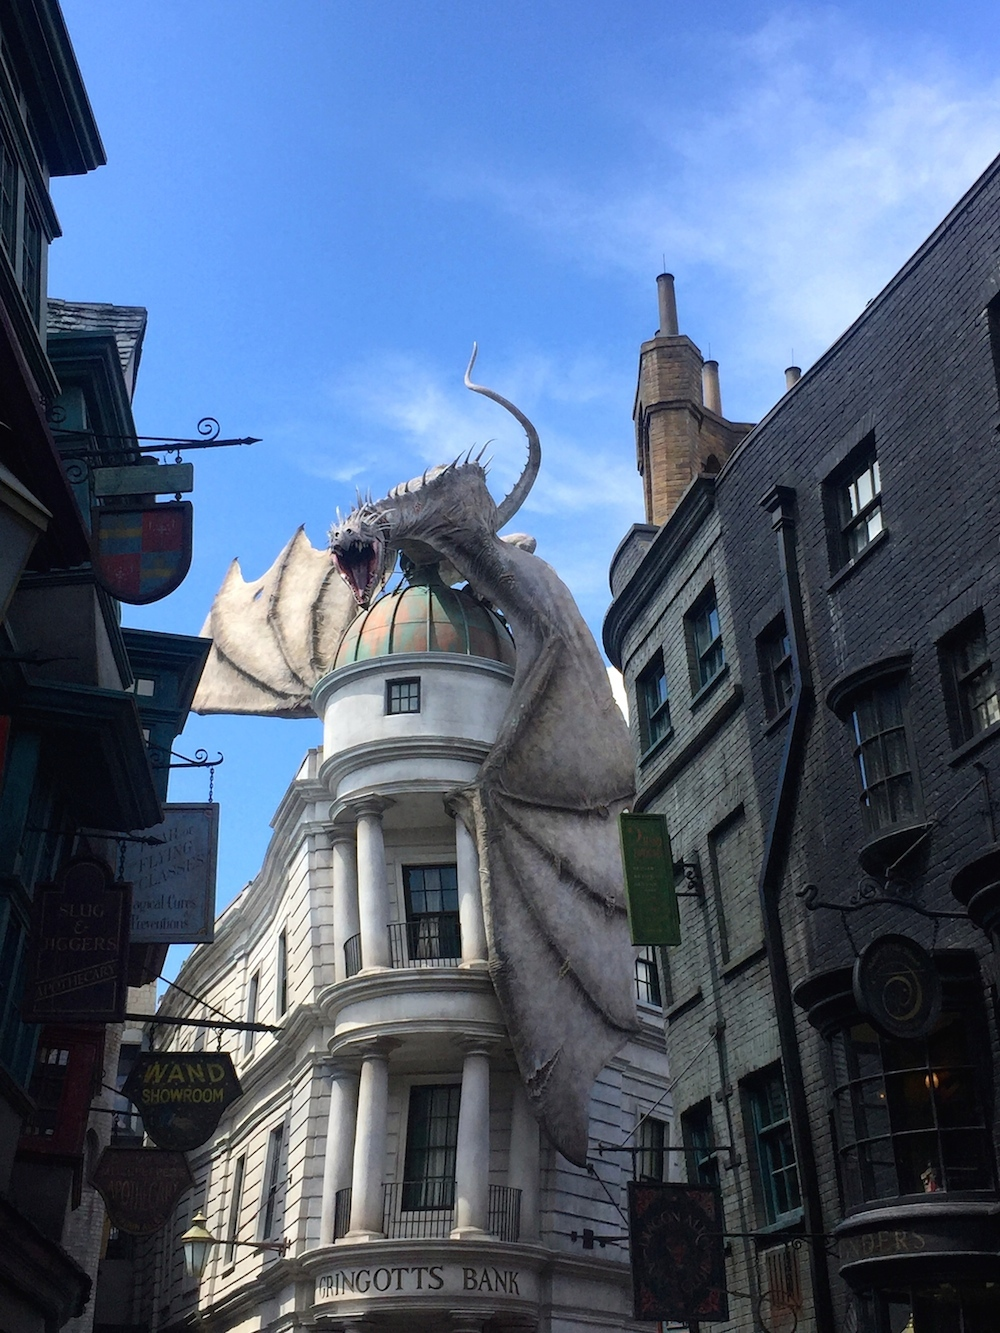 Fire breathing dragon on top of Gringott's Bank at Universal Orlando's Wizarding World of Harry Potter in Orlando, Florida